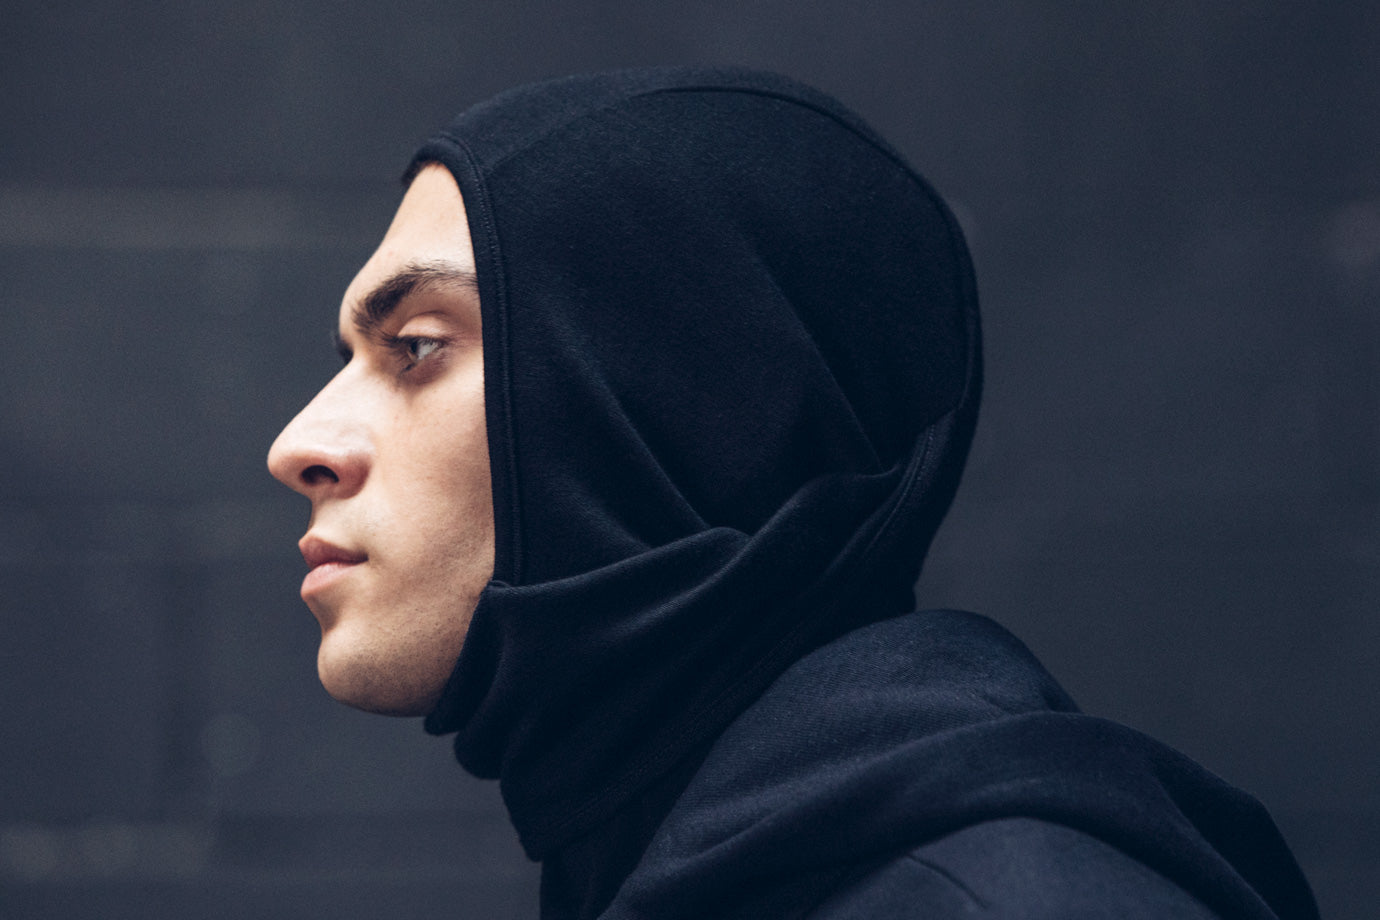 Kiril wearing the Doublefine Merino Balaclava with the face down.